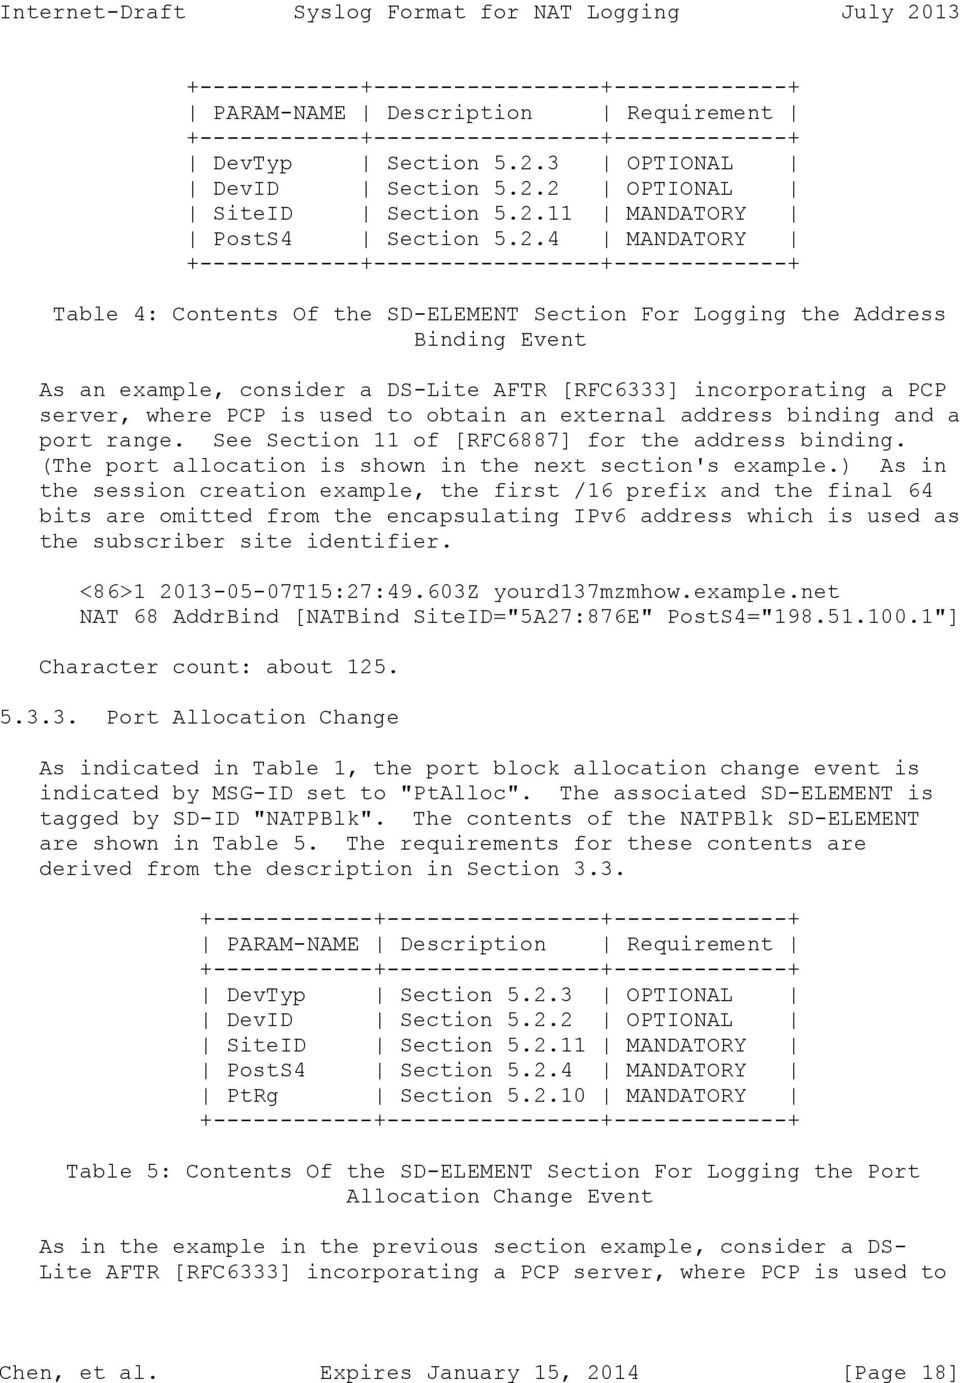 a DS-Lite AFTR [RFC6333] incorporating a PCP server, where PCP is used to obtain an external address binding and a port range. See Section 11 of [RFC6887] for the address binding.